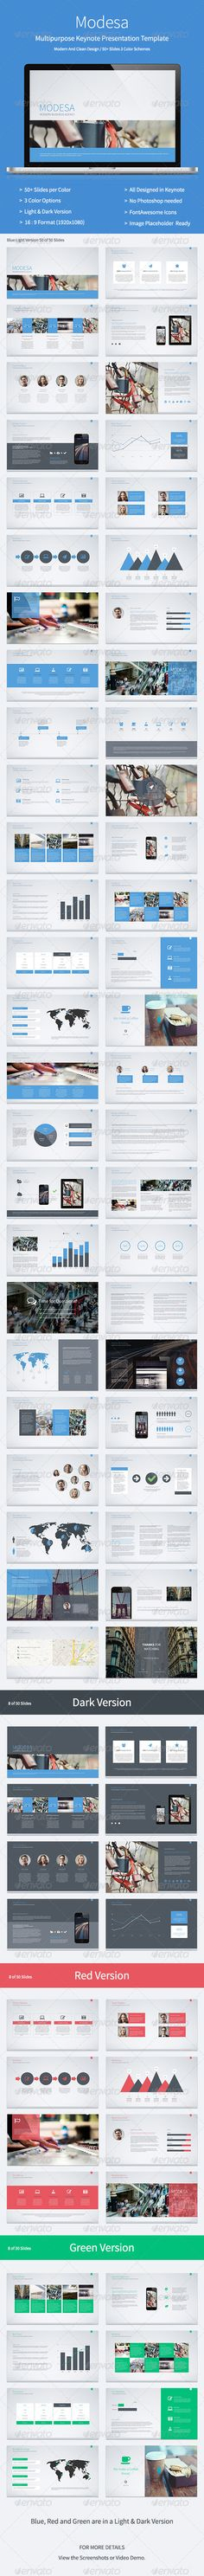 Modesa -  Multipurpose Keynote Template   KEY Tags: agency #animation #blue #business #charts #clean #company #corporate #creative #dark #dkcretive #graphs #green #growth #infographics #infographics #keynote #light #multi-purpose #networks #osx #portfolio #presentation #realestate #red #socialmedia #statics #template #GRAPHICRIVER